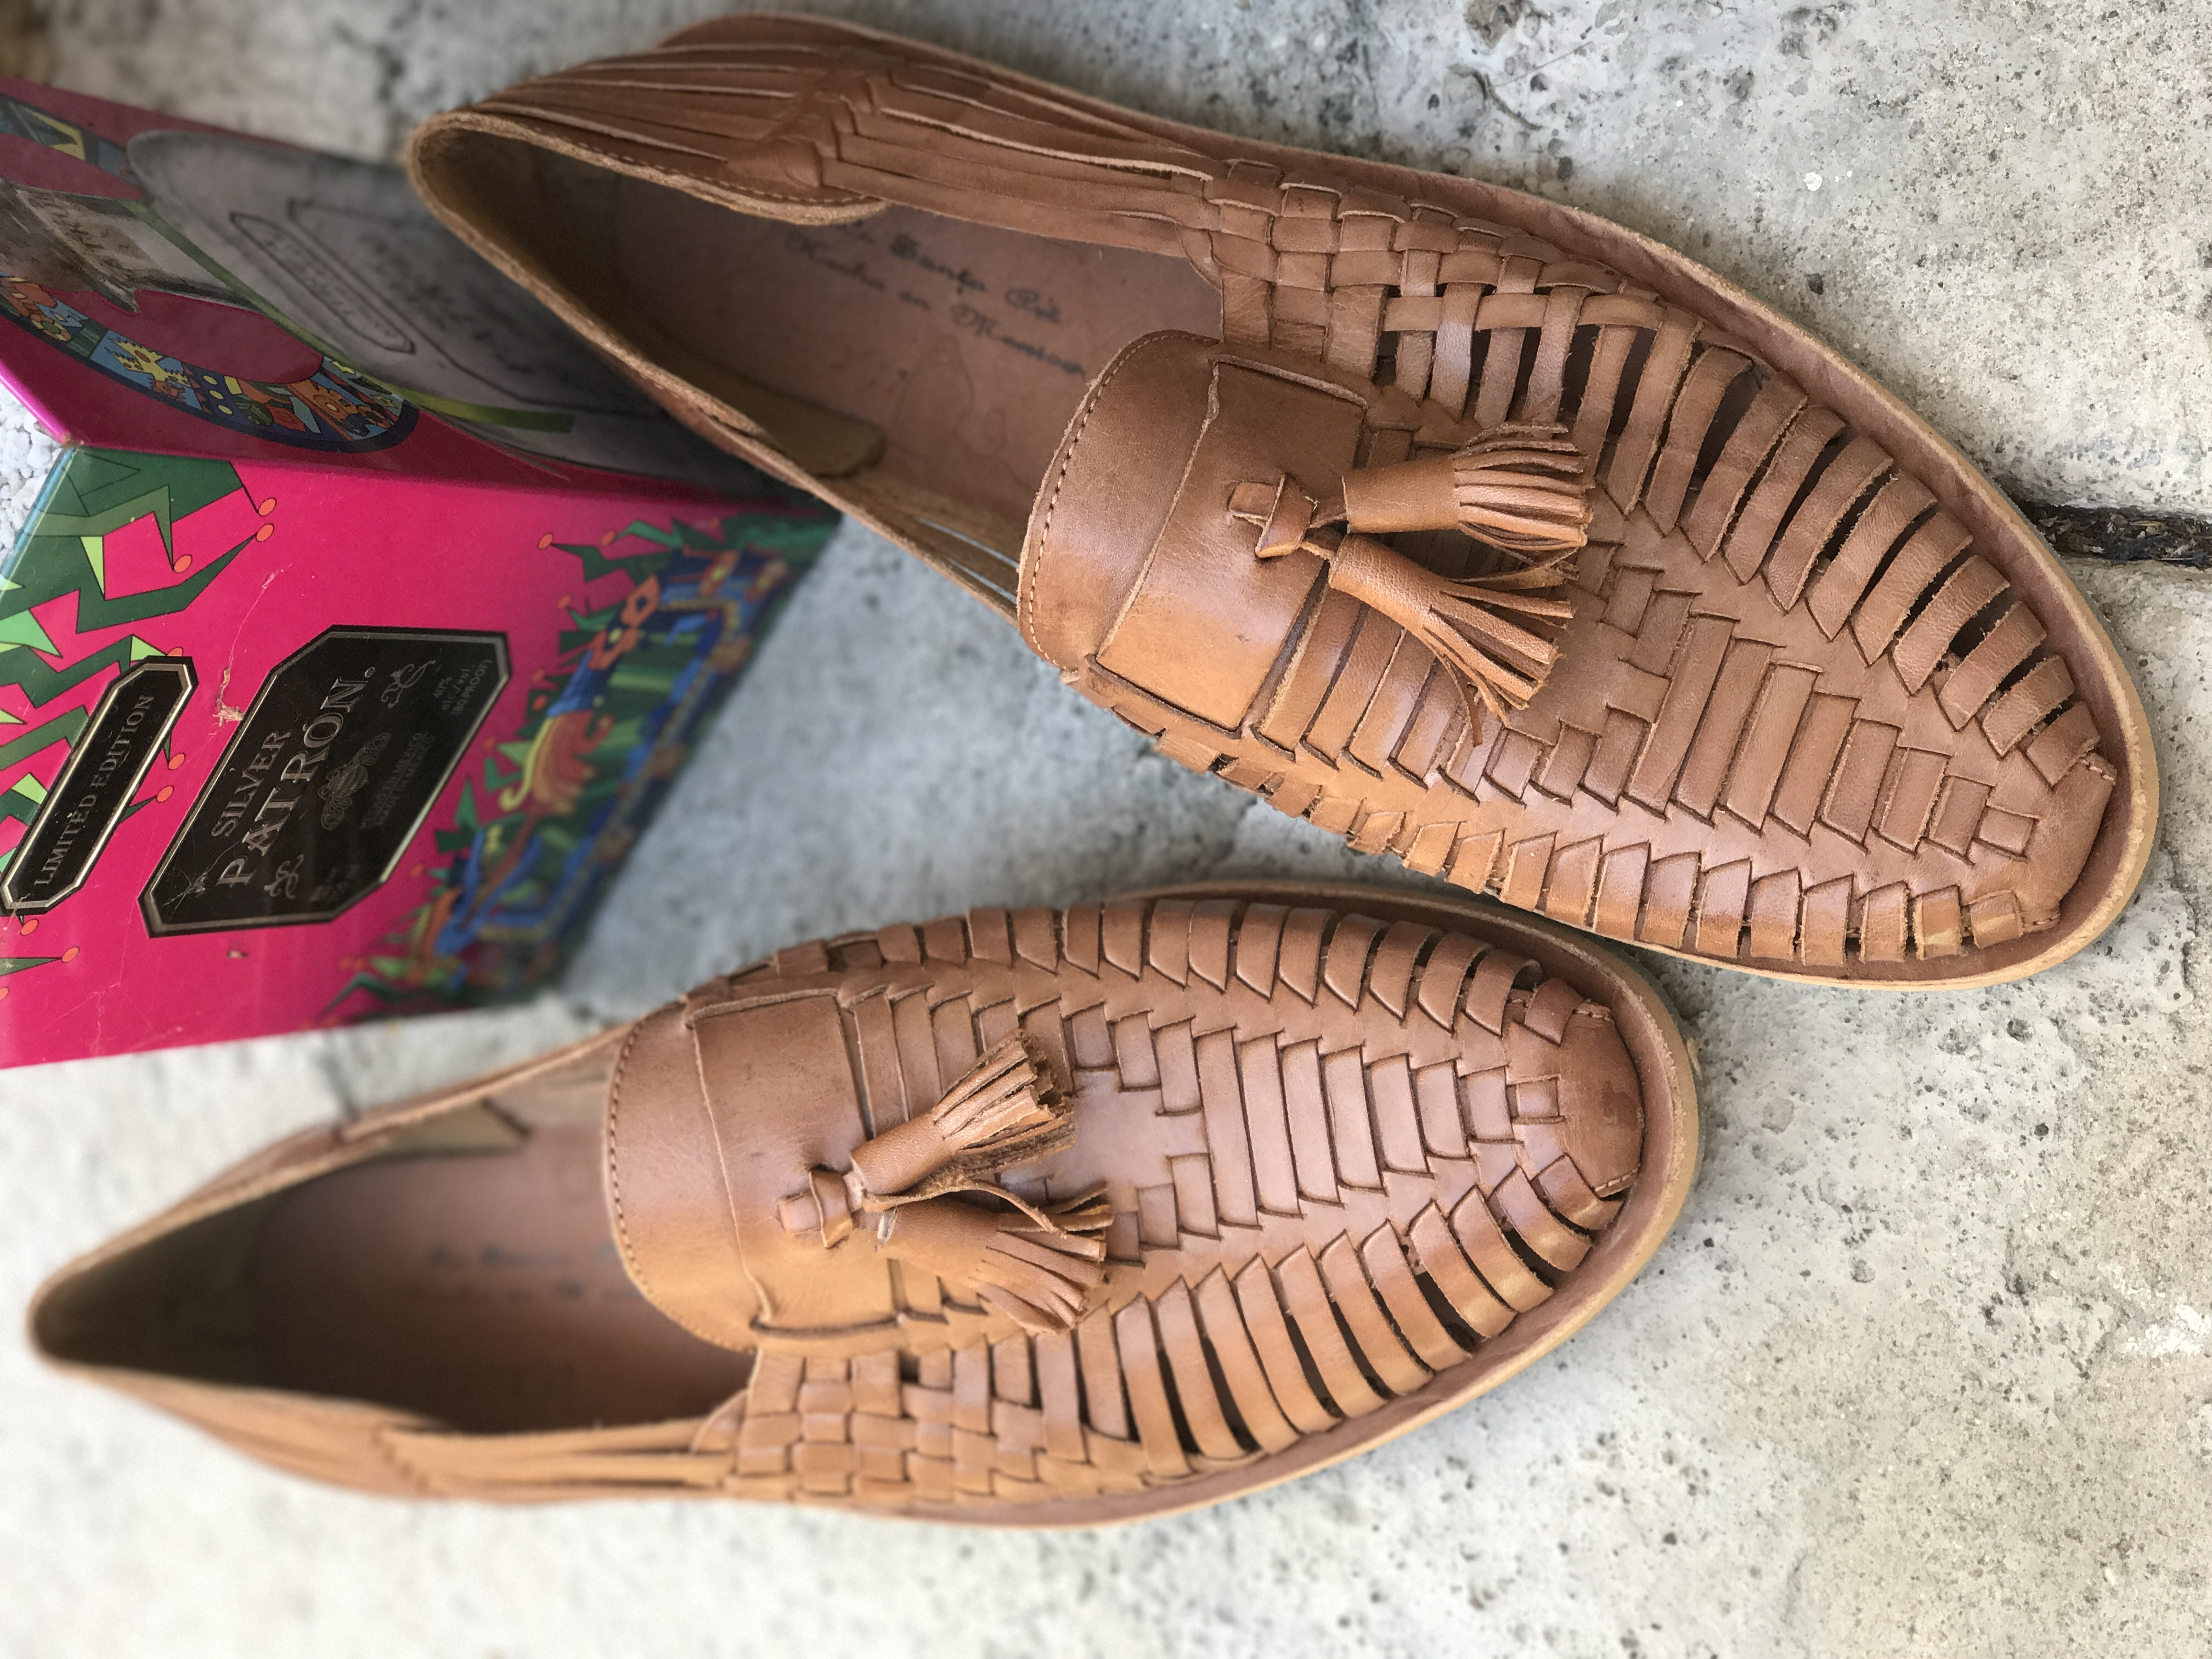 4143a671ef2ba Gallo Huaraches for Men - Shoes - Leather - Mexican Huaraches - Handmade -  Mexican Shoes from The Catrina Store